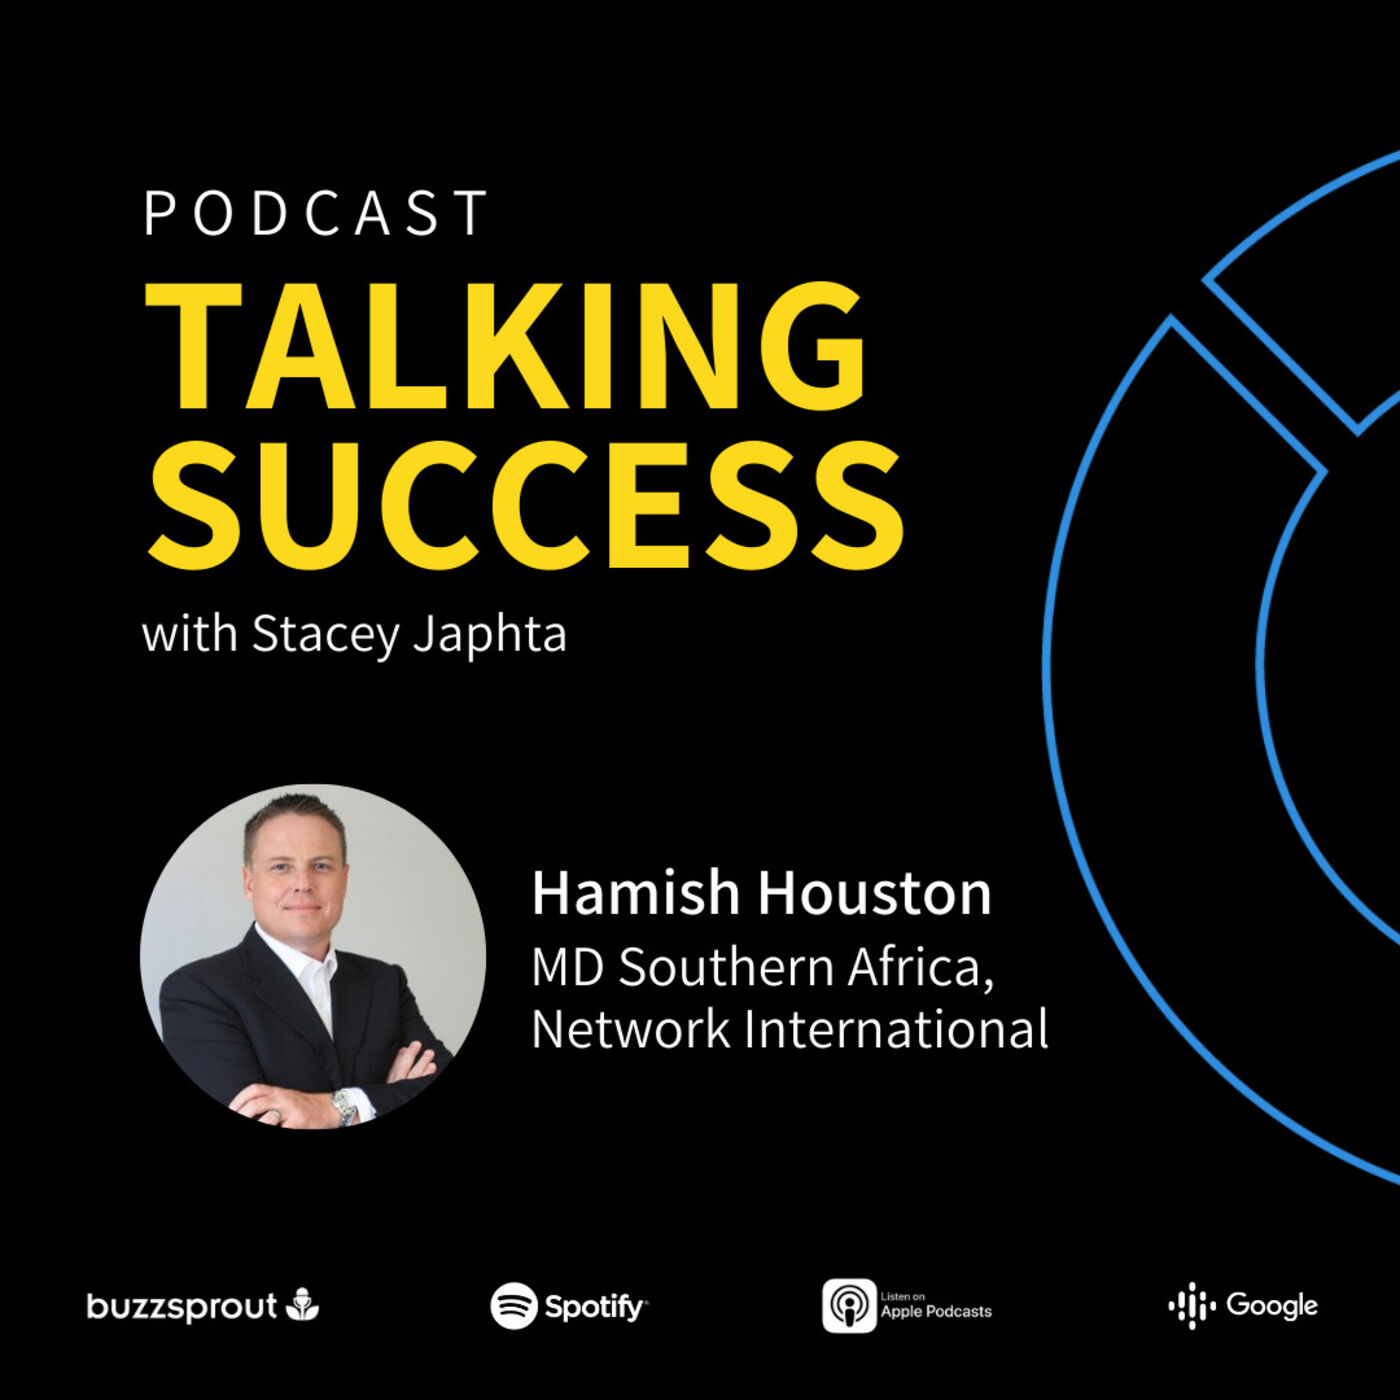 Hamish Houston, MD Southern Africa of Network International - All things FinTech, tips on interviewing, & what it takes to be successful in sales